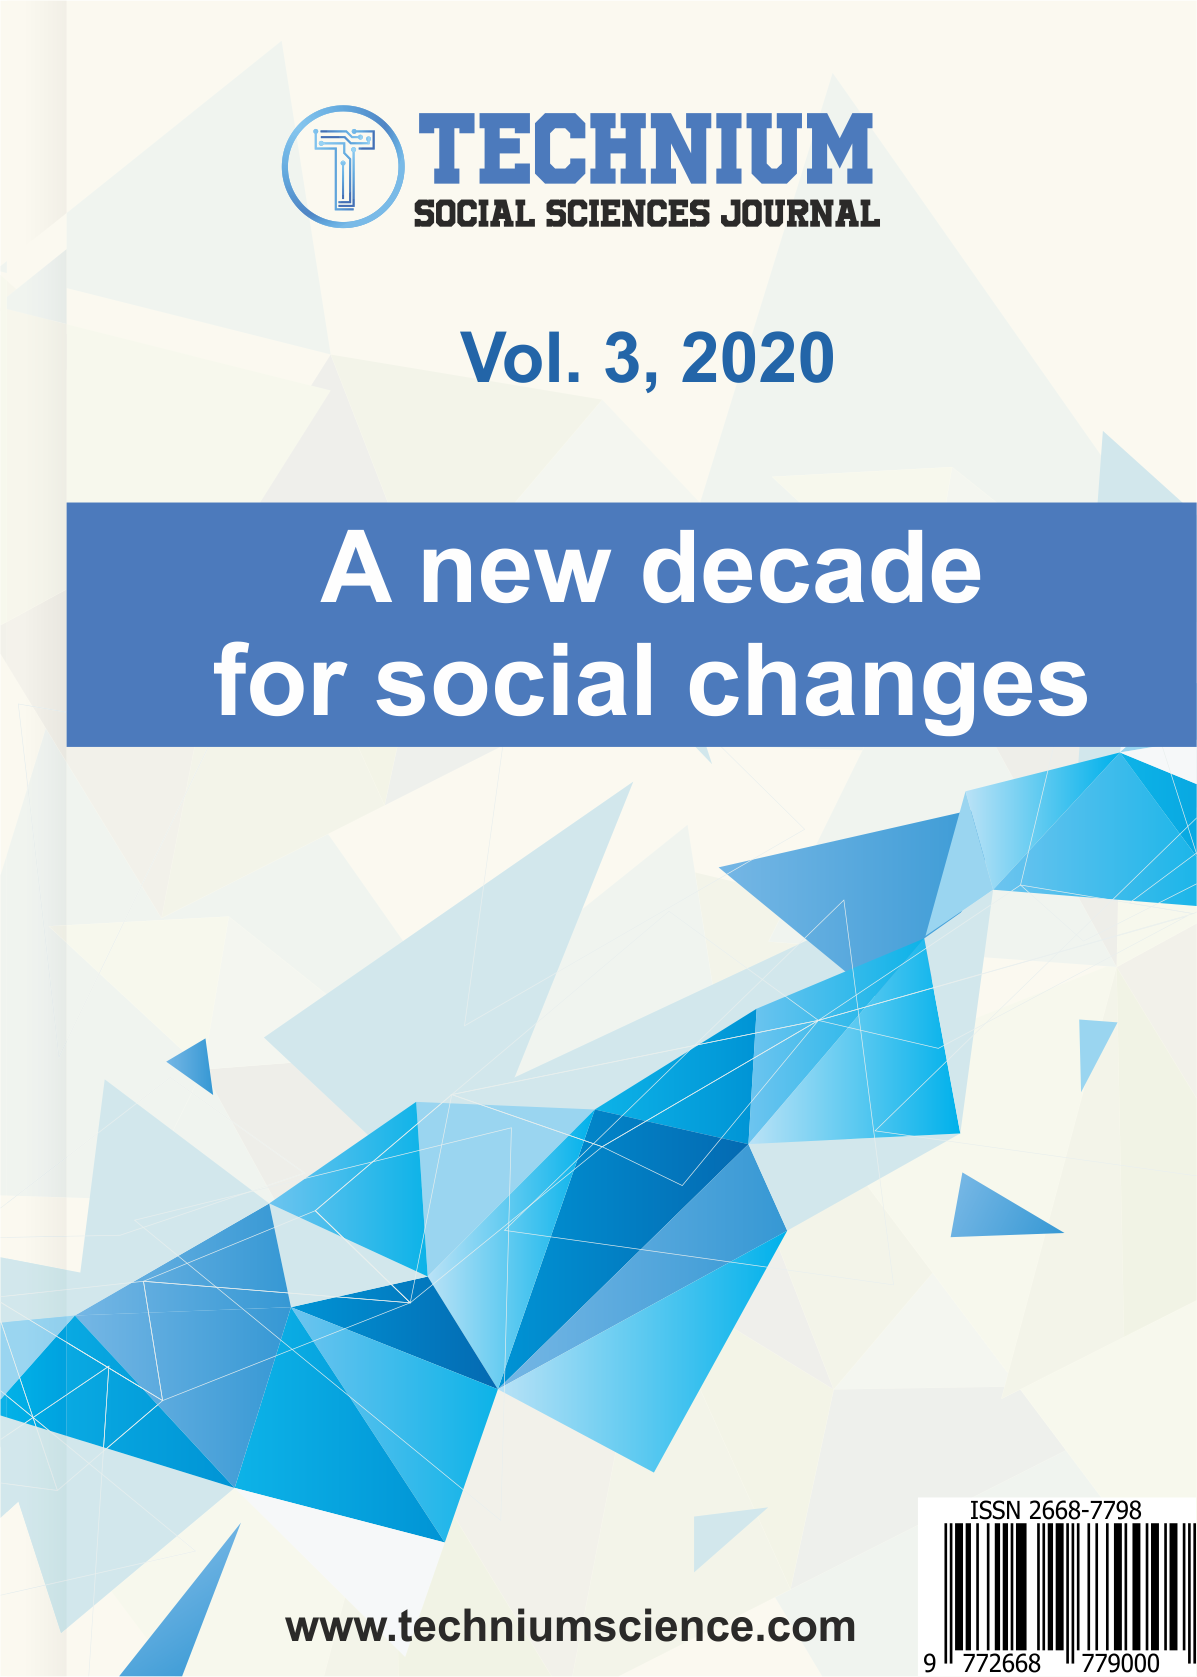 View Vol. 3 No. 1 (2020): A new decade for social changes